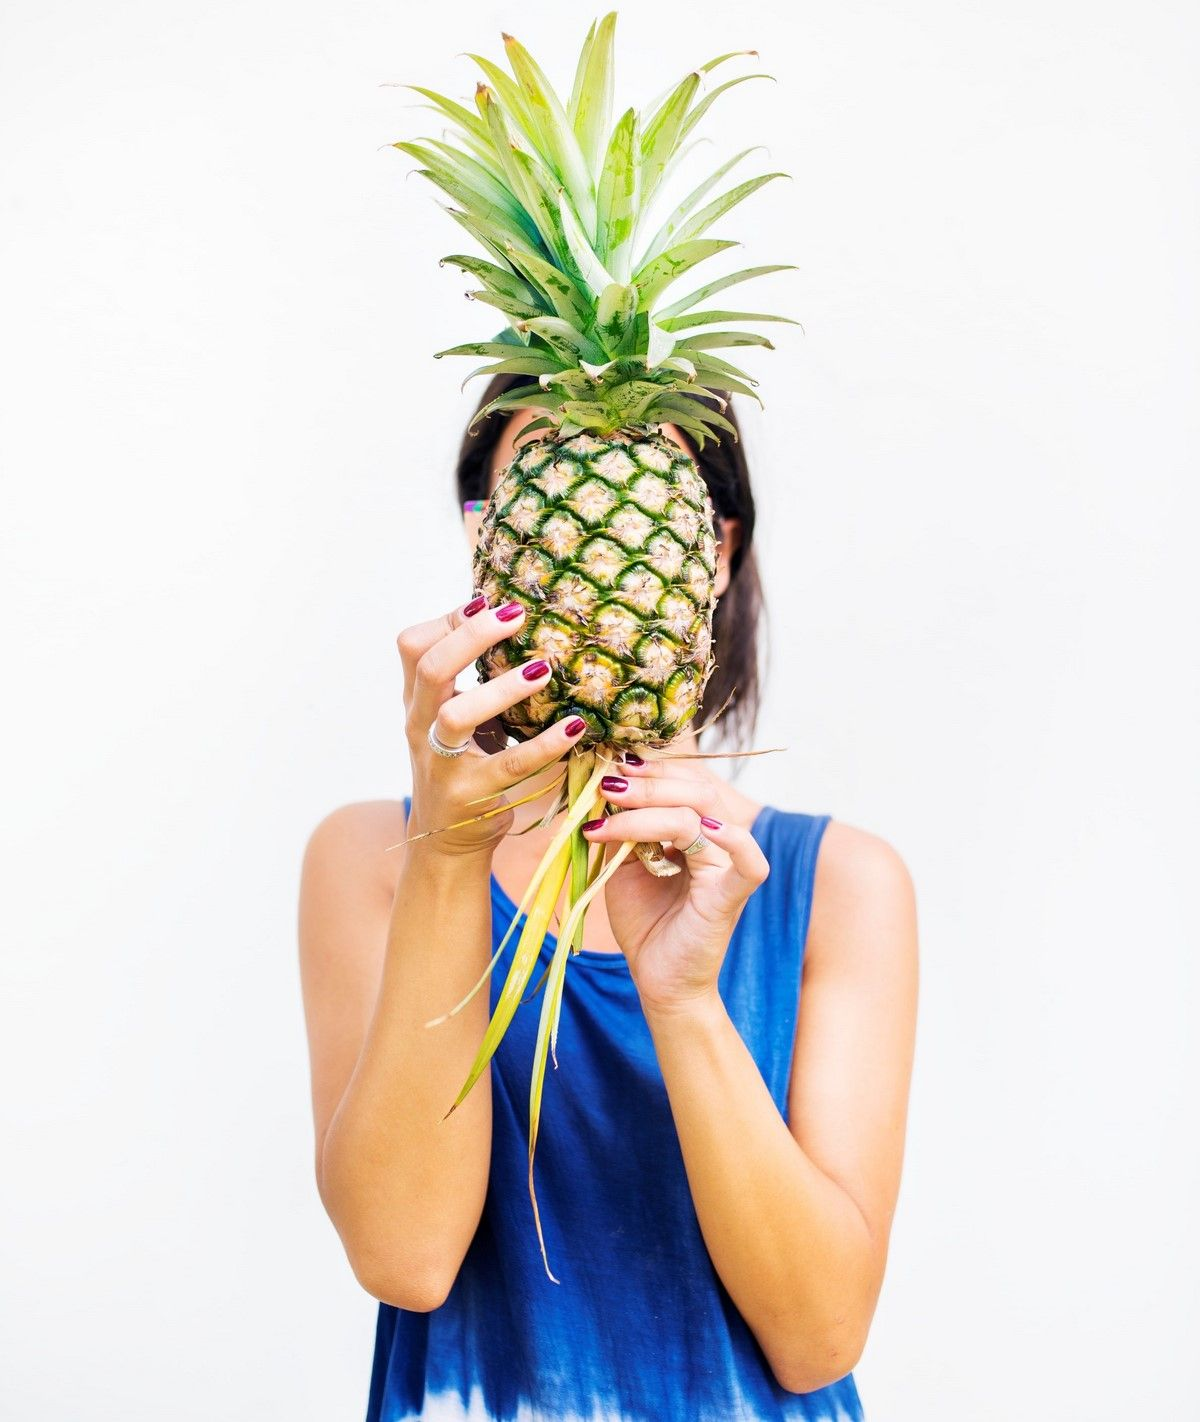 pineapple on skin benefits for glowing complexion and tight pores